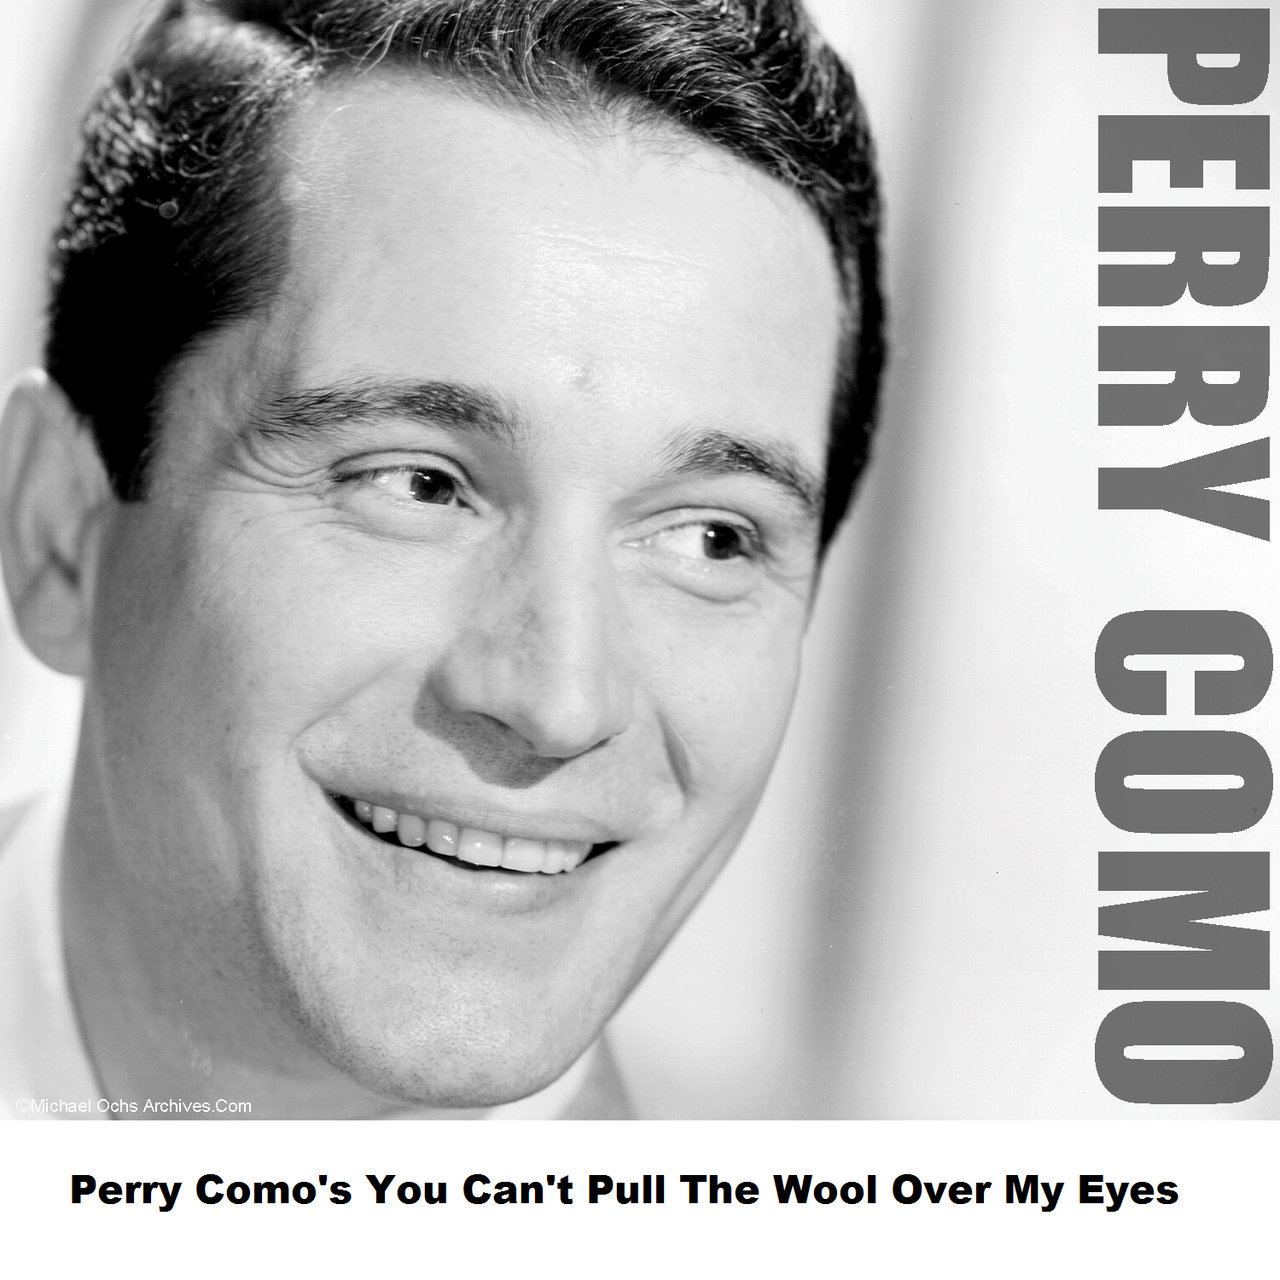 TIDAL: Listen to Perry Como on TIDAL